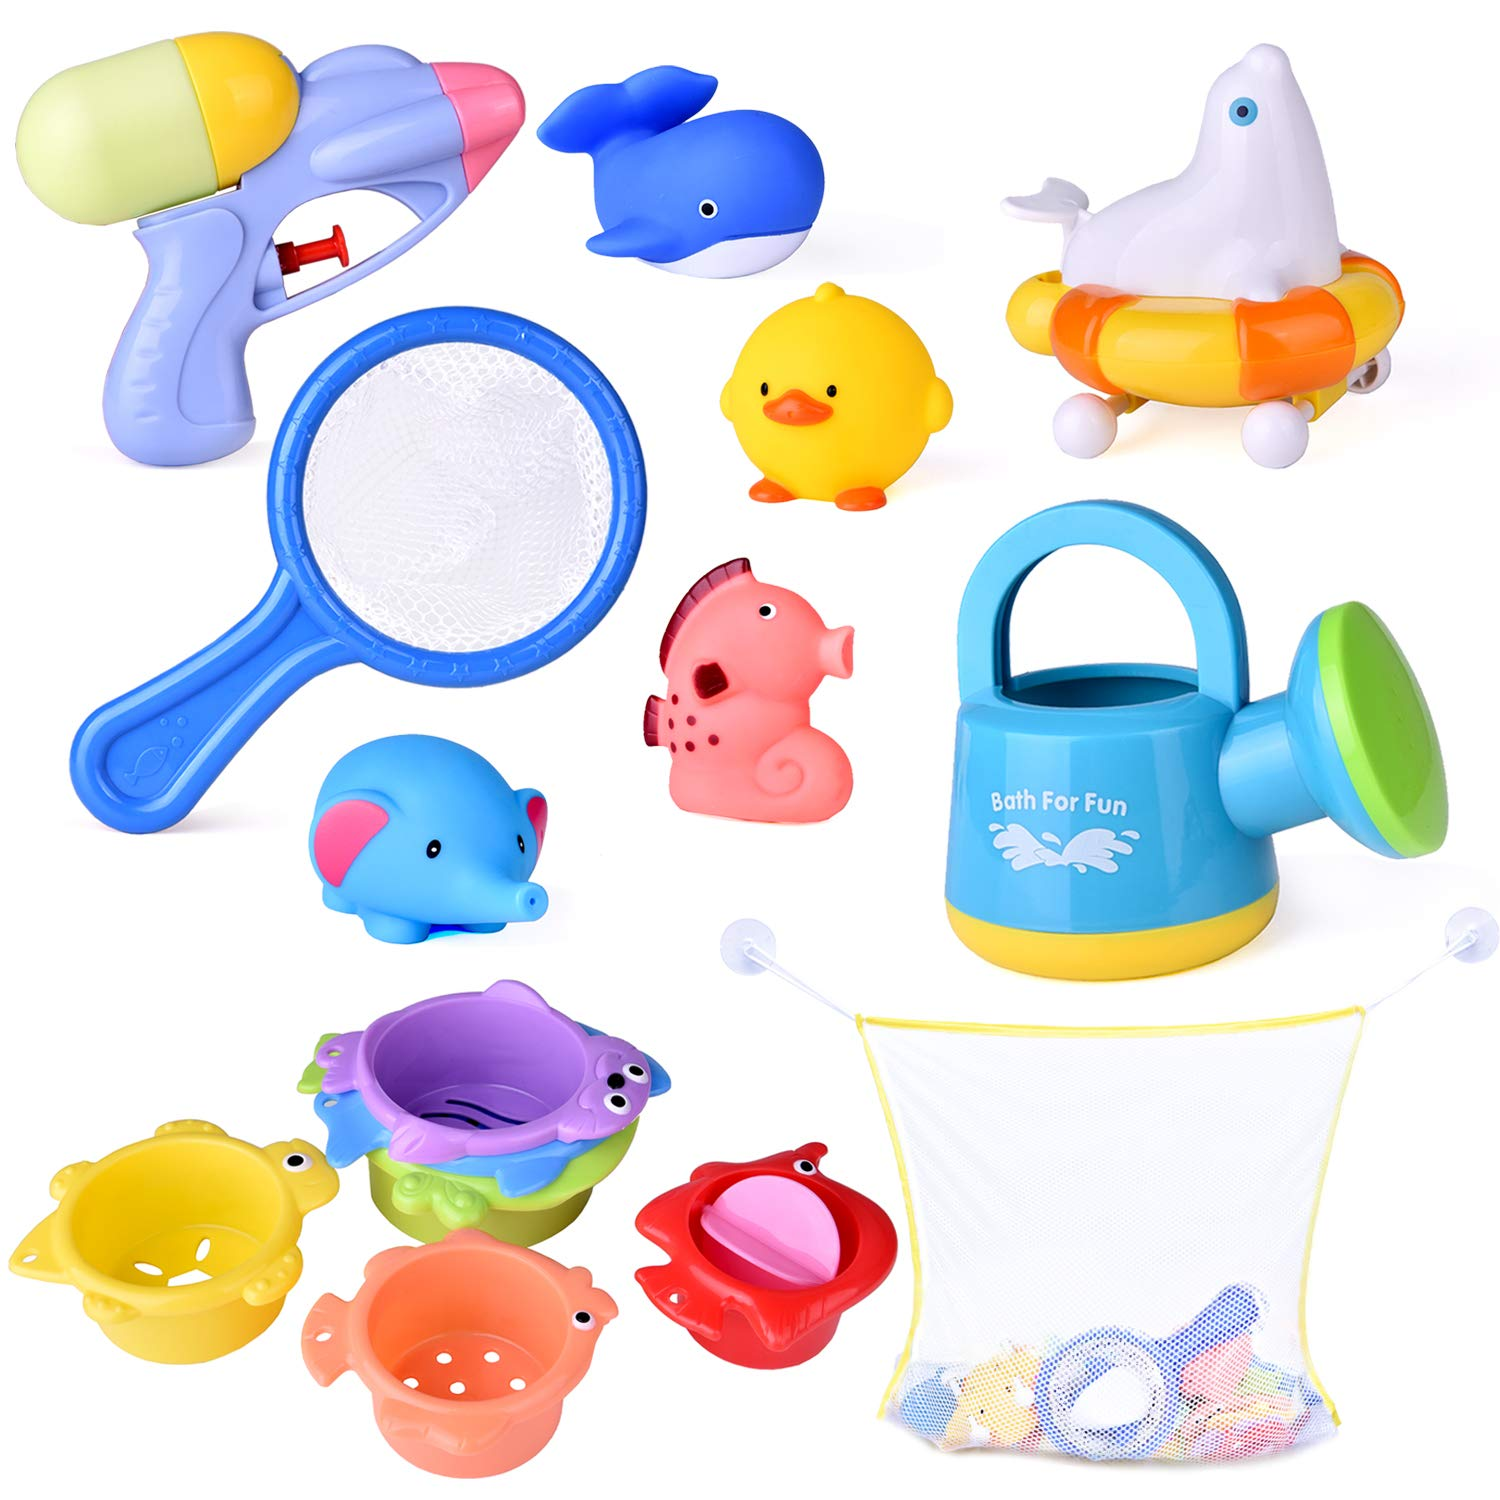 15 PCs Baby Bath Toys with Ocean Animals Bath Squirters Toys, Stacking Cups, Water Blaster Toys, Watering Can, Fishing Net and Bath Toy Organizer